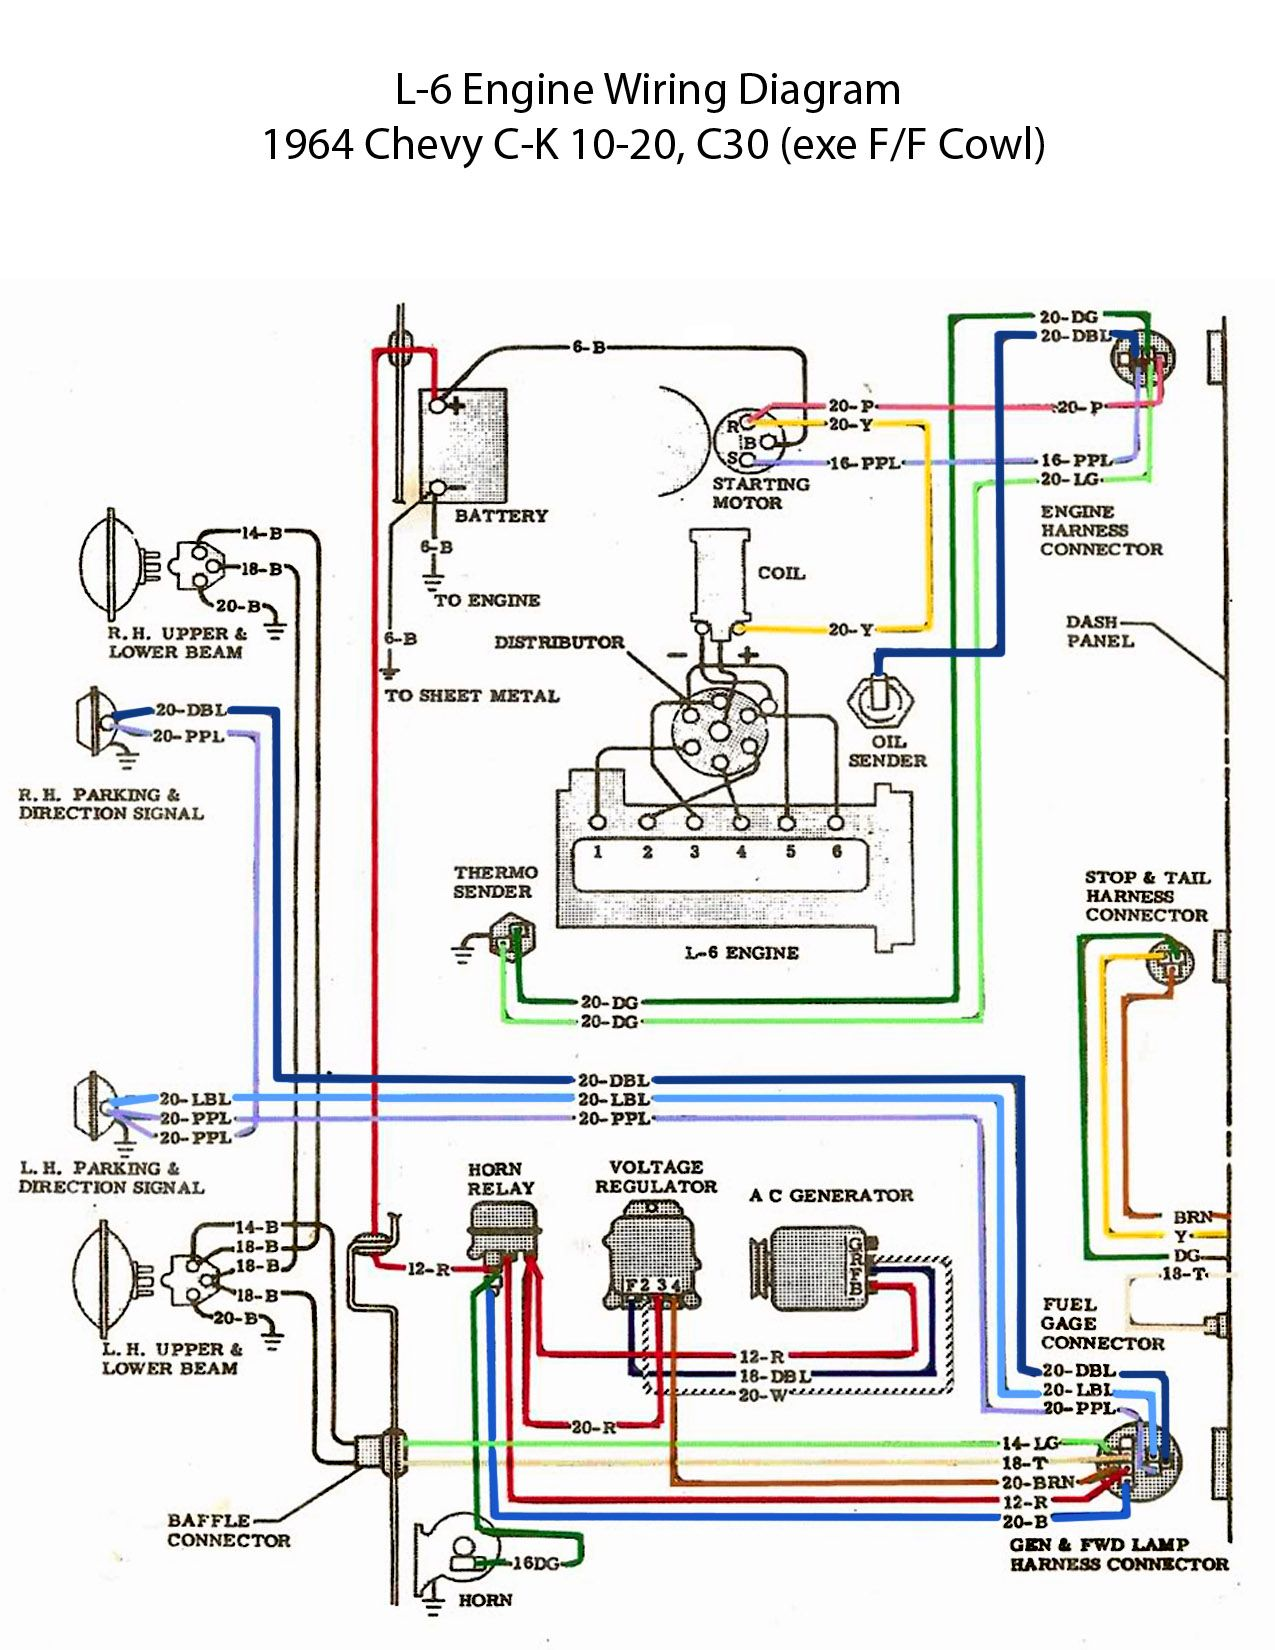 electric l 6 engine wiring diagram 60s chevy c10 wiring rh pinterest com 1954 chevy truck wiring diagram 54 chevy truck wiring diagram